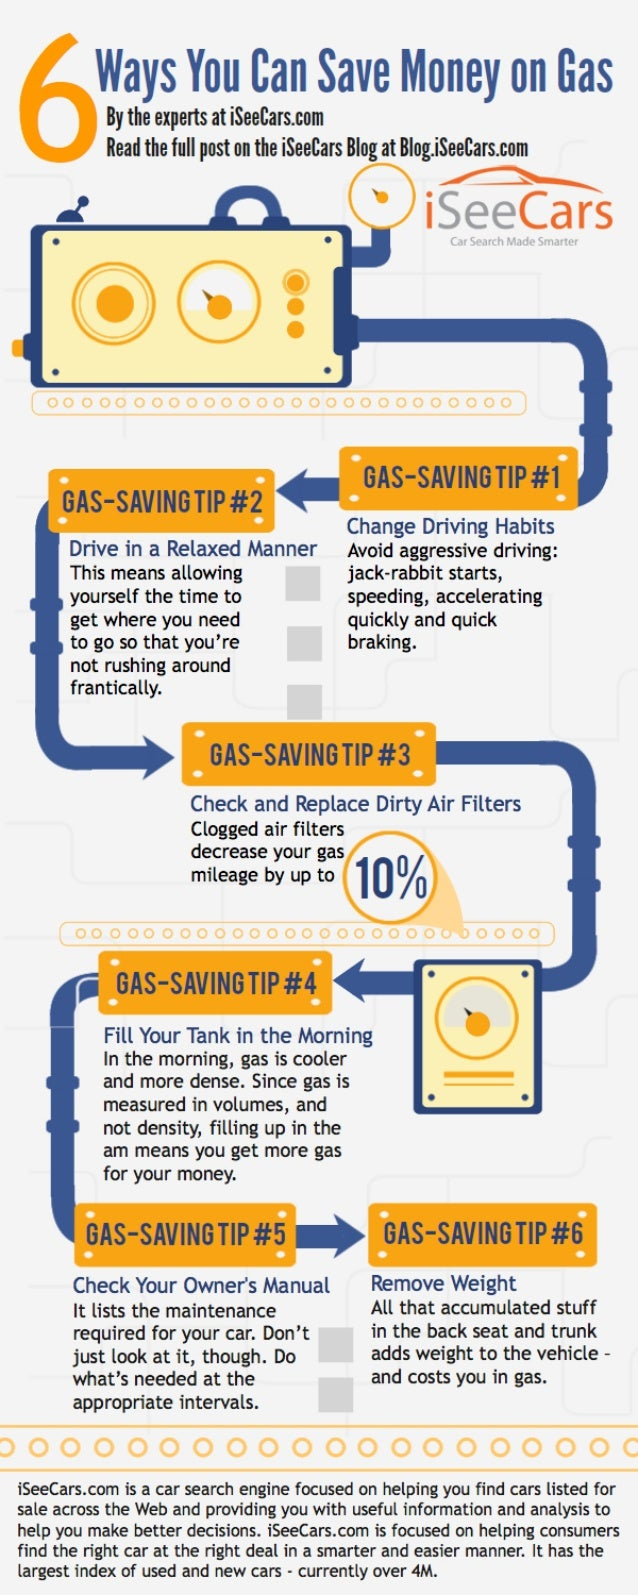 Infographic Shows Drivers How to Save Money on Gas